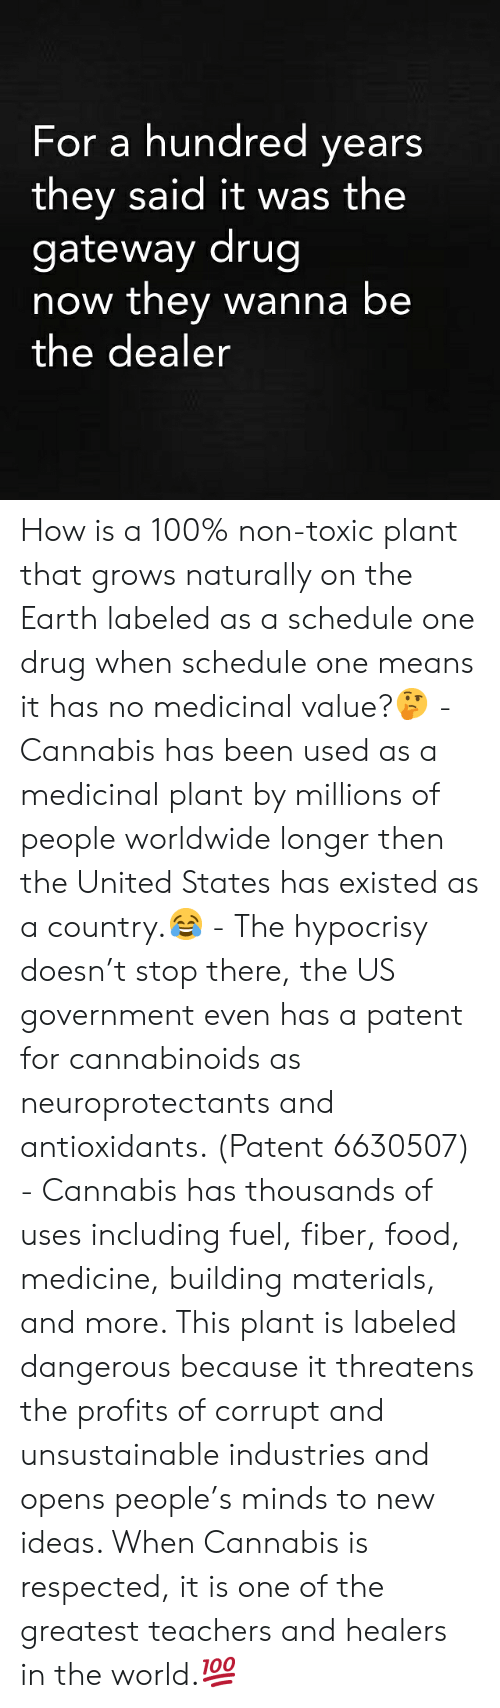 patent: For a hundred years  they said it was the  gateway drug  now they wanna be  the dealer How is a 100% non-toxic plant that grows naturally on the Earth labeled as a schedule one drug when schedule one means it has no medicinal value?🤔 - Cannabis has been used as a medicinal plant by millions of people worldwide longer then the United States has existed as a country.😂 - The hypocrisy doesn't stop there, the US government even has a patent for cannabinoids as neuroprotectants and antioxidants. (Patent 6630507) - Cannabis has thousands of uses including fuel, fiber, food, medicine, building materials, and more. This plant is labeled dangerous because it threatens the profits of corrupt and unsustainable industries and opens people's minds to new ideas. When Cannabis is respected, it is one of the greatest teachers and healers in the world.💯